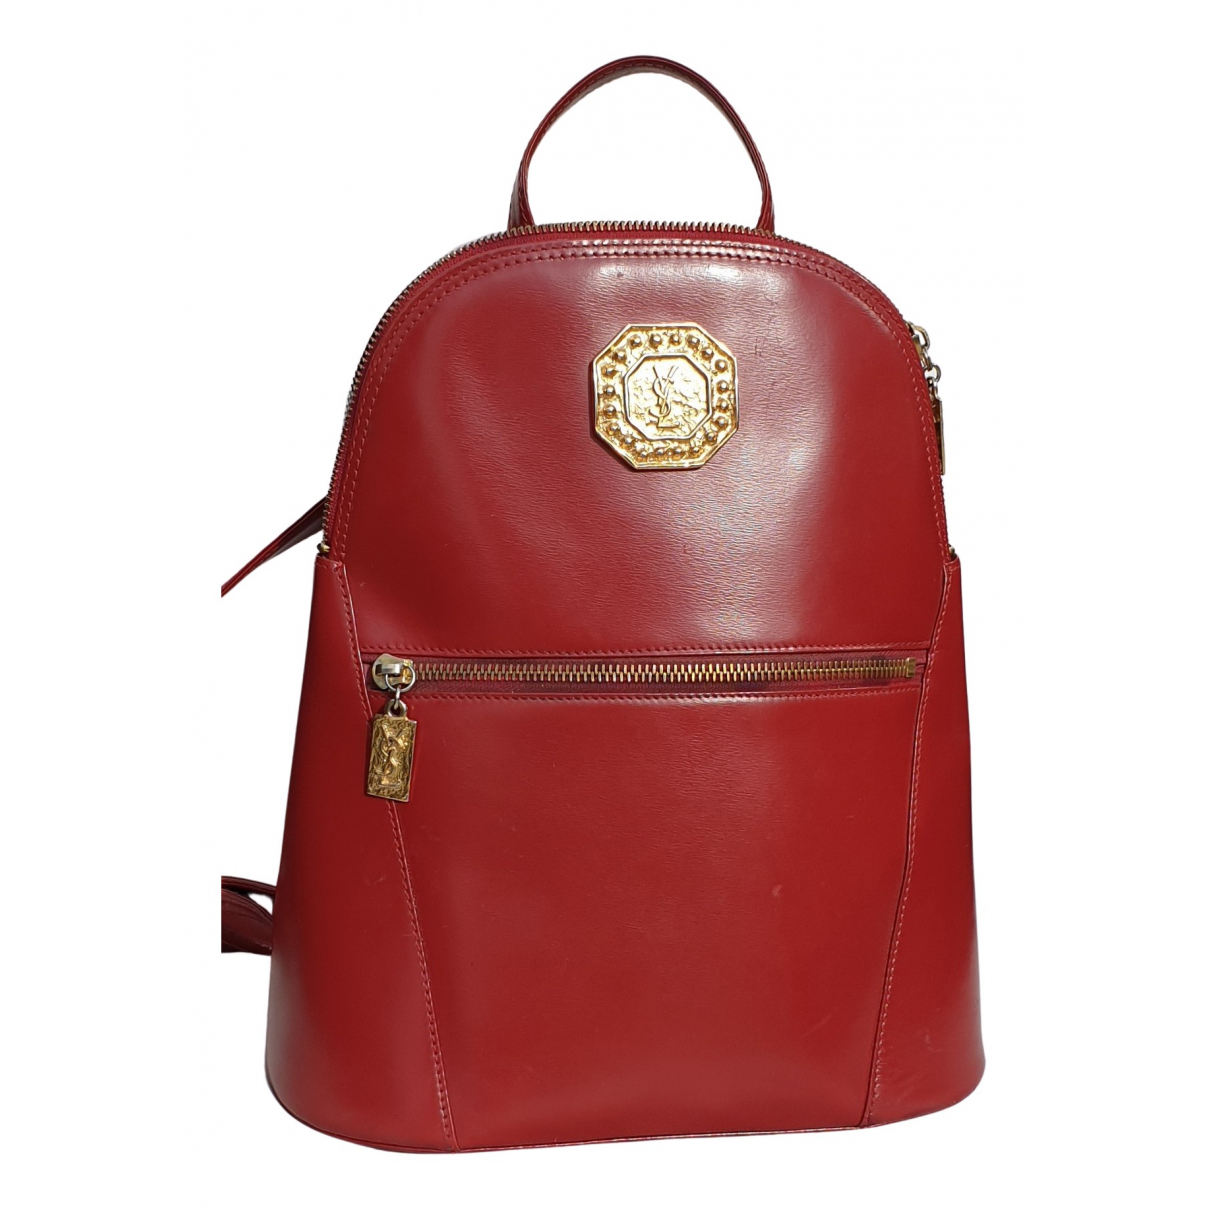 Yves Saint Laurent N Red Leather backpack for Women N